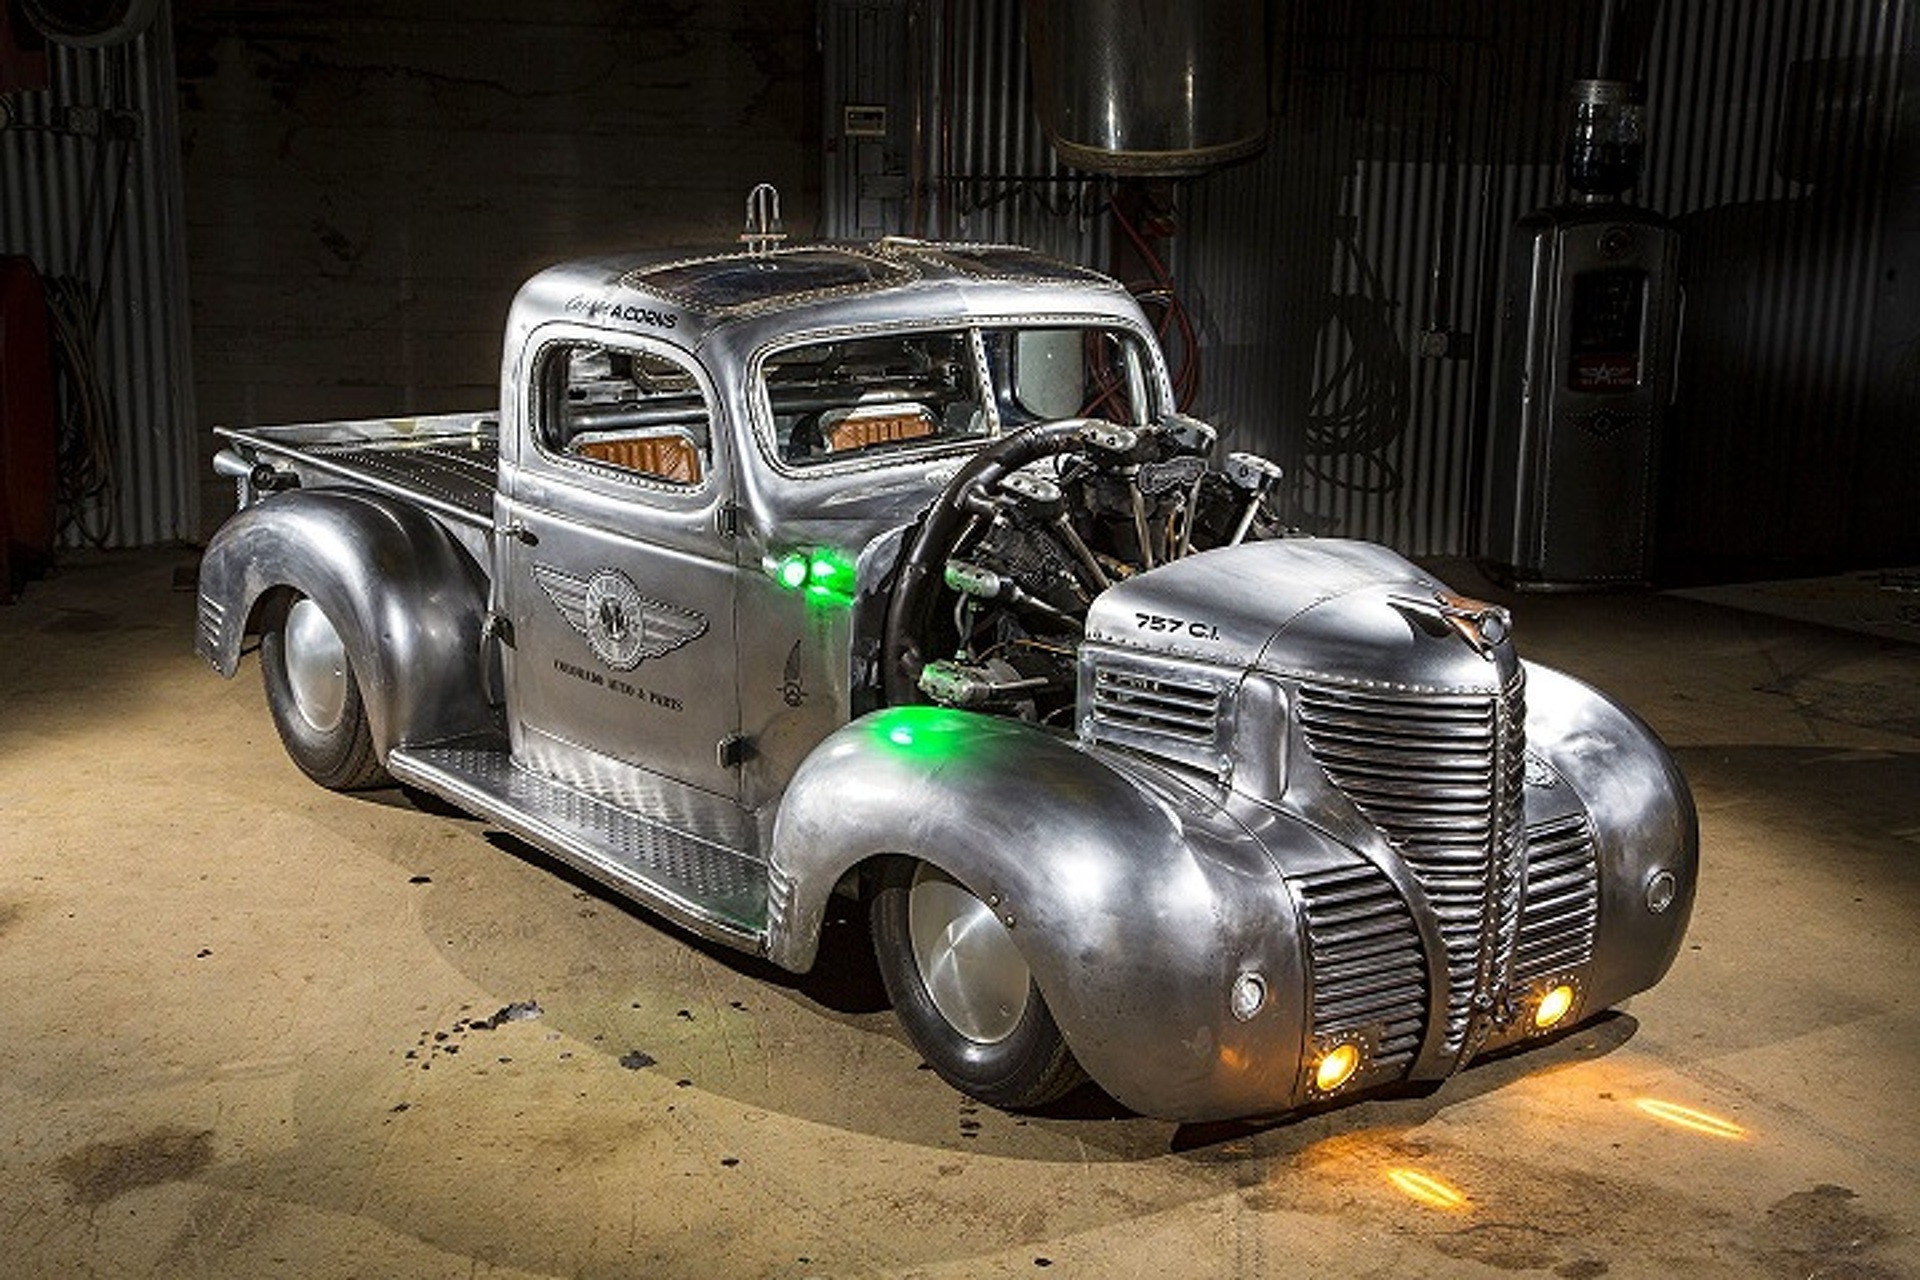 1948 Plymouth Parts Hot Rod Business Coupe Pickup Is An Apocalyptic Airplane Powered Piece Of Art 1920x1280